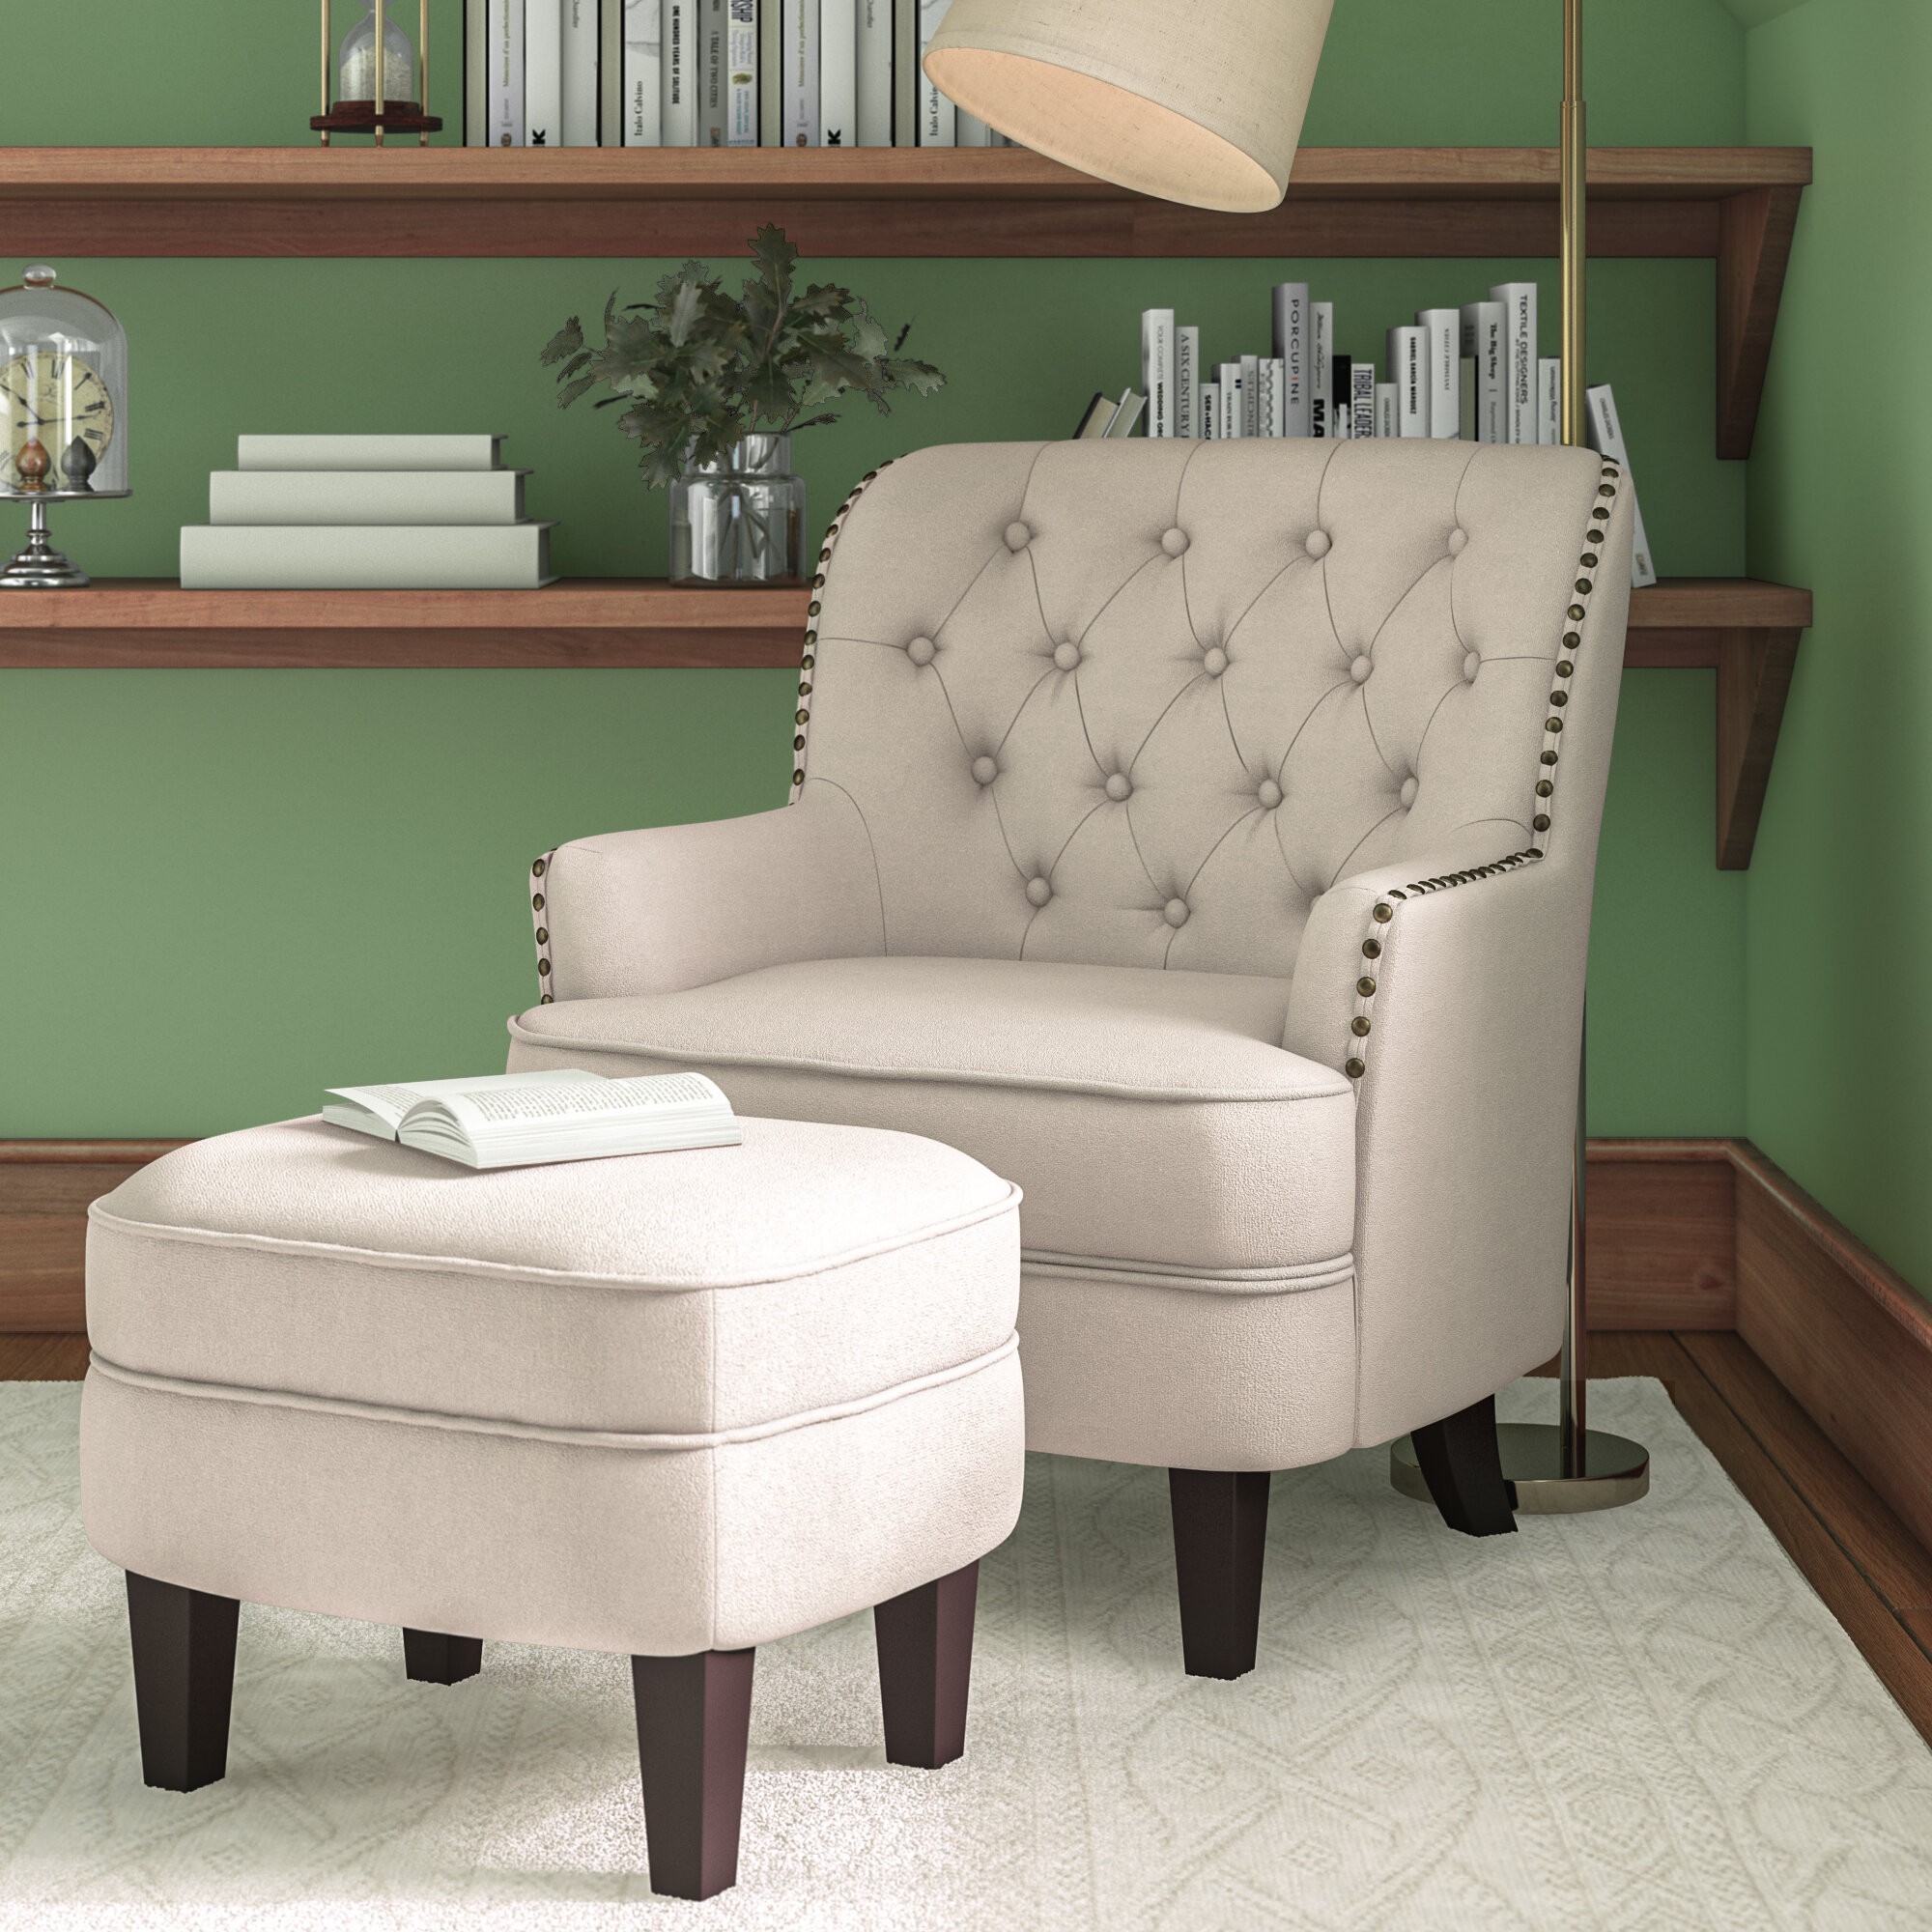 Harmon Cloud Barrel Chair And Ottoman Throughout Starks Tufted Fabric Chesterfield Chair And Ottoman Sets (View 8 of 15)